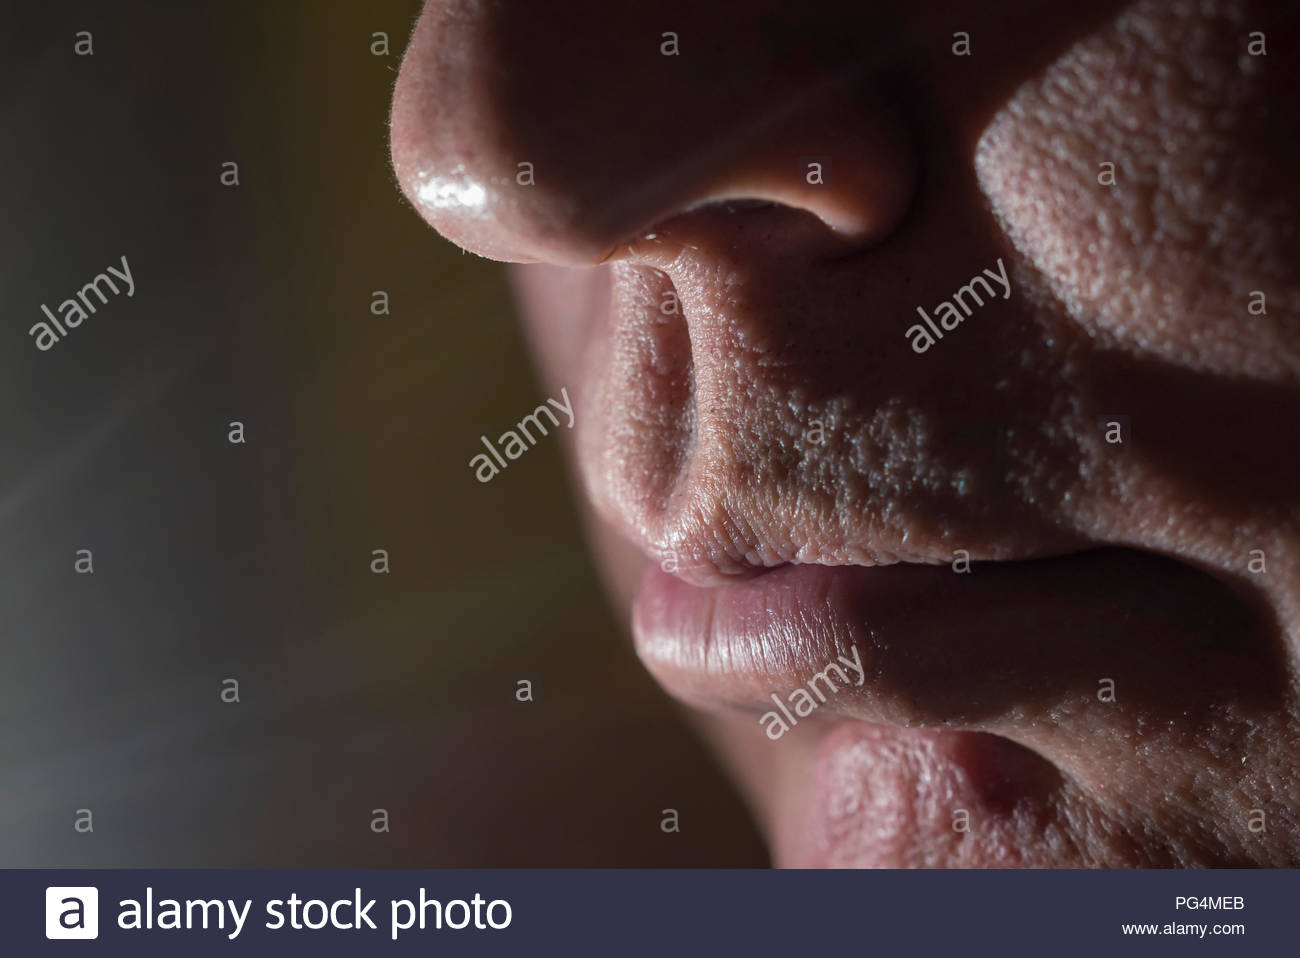 Closeup of middle aged mans face showing his mouth and nose, with moody lighting. Mood concept. Depressed. Depression. Creative lighting. Human senses. - Stock Image